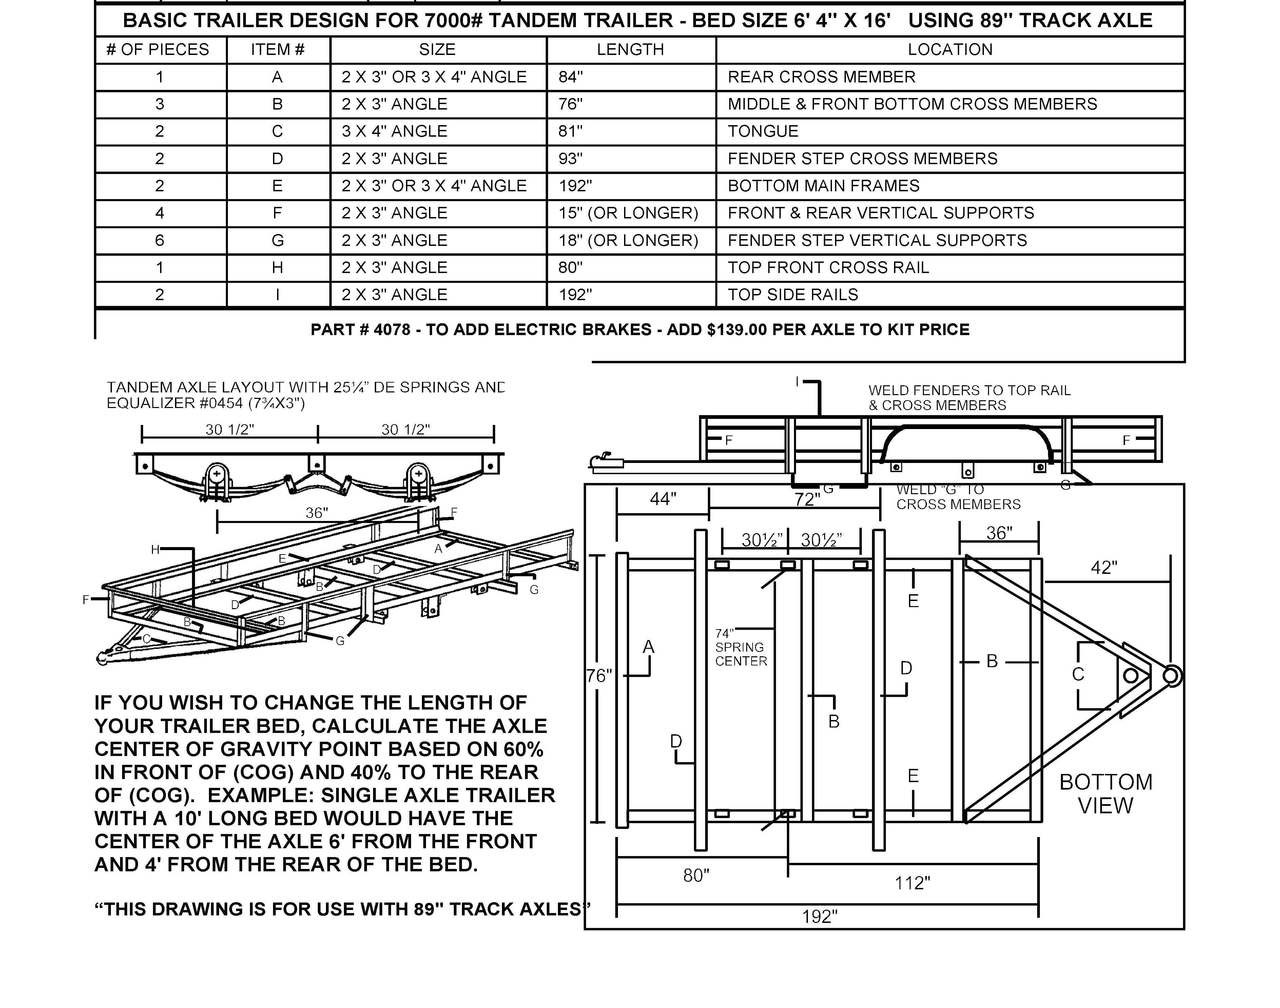 hight resolution of build your own utility trailer with champion trailers tandem sincgars radio configurations diagrams 95 champion wiring diagram